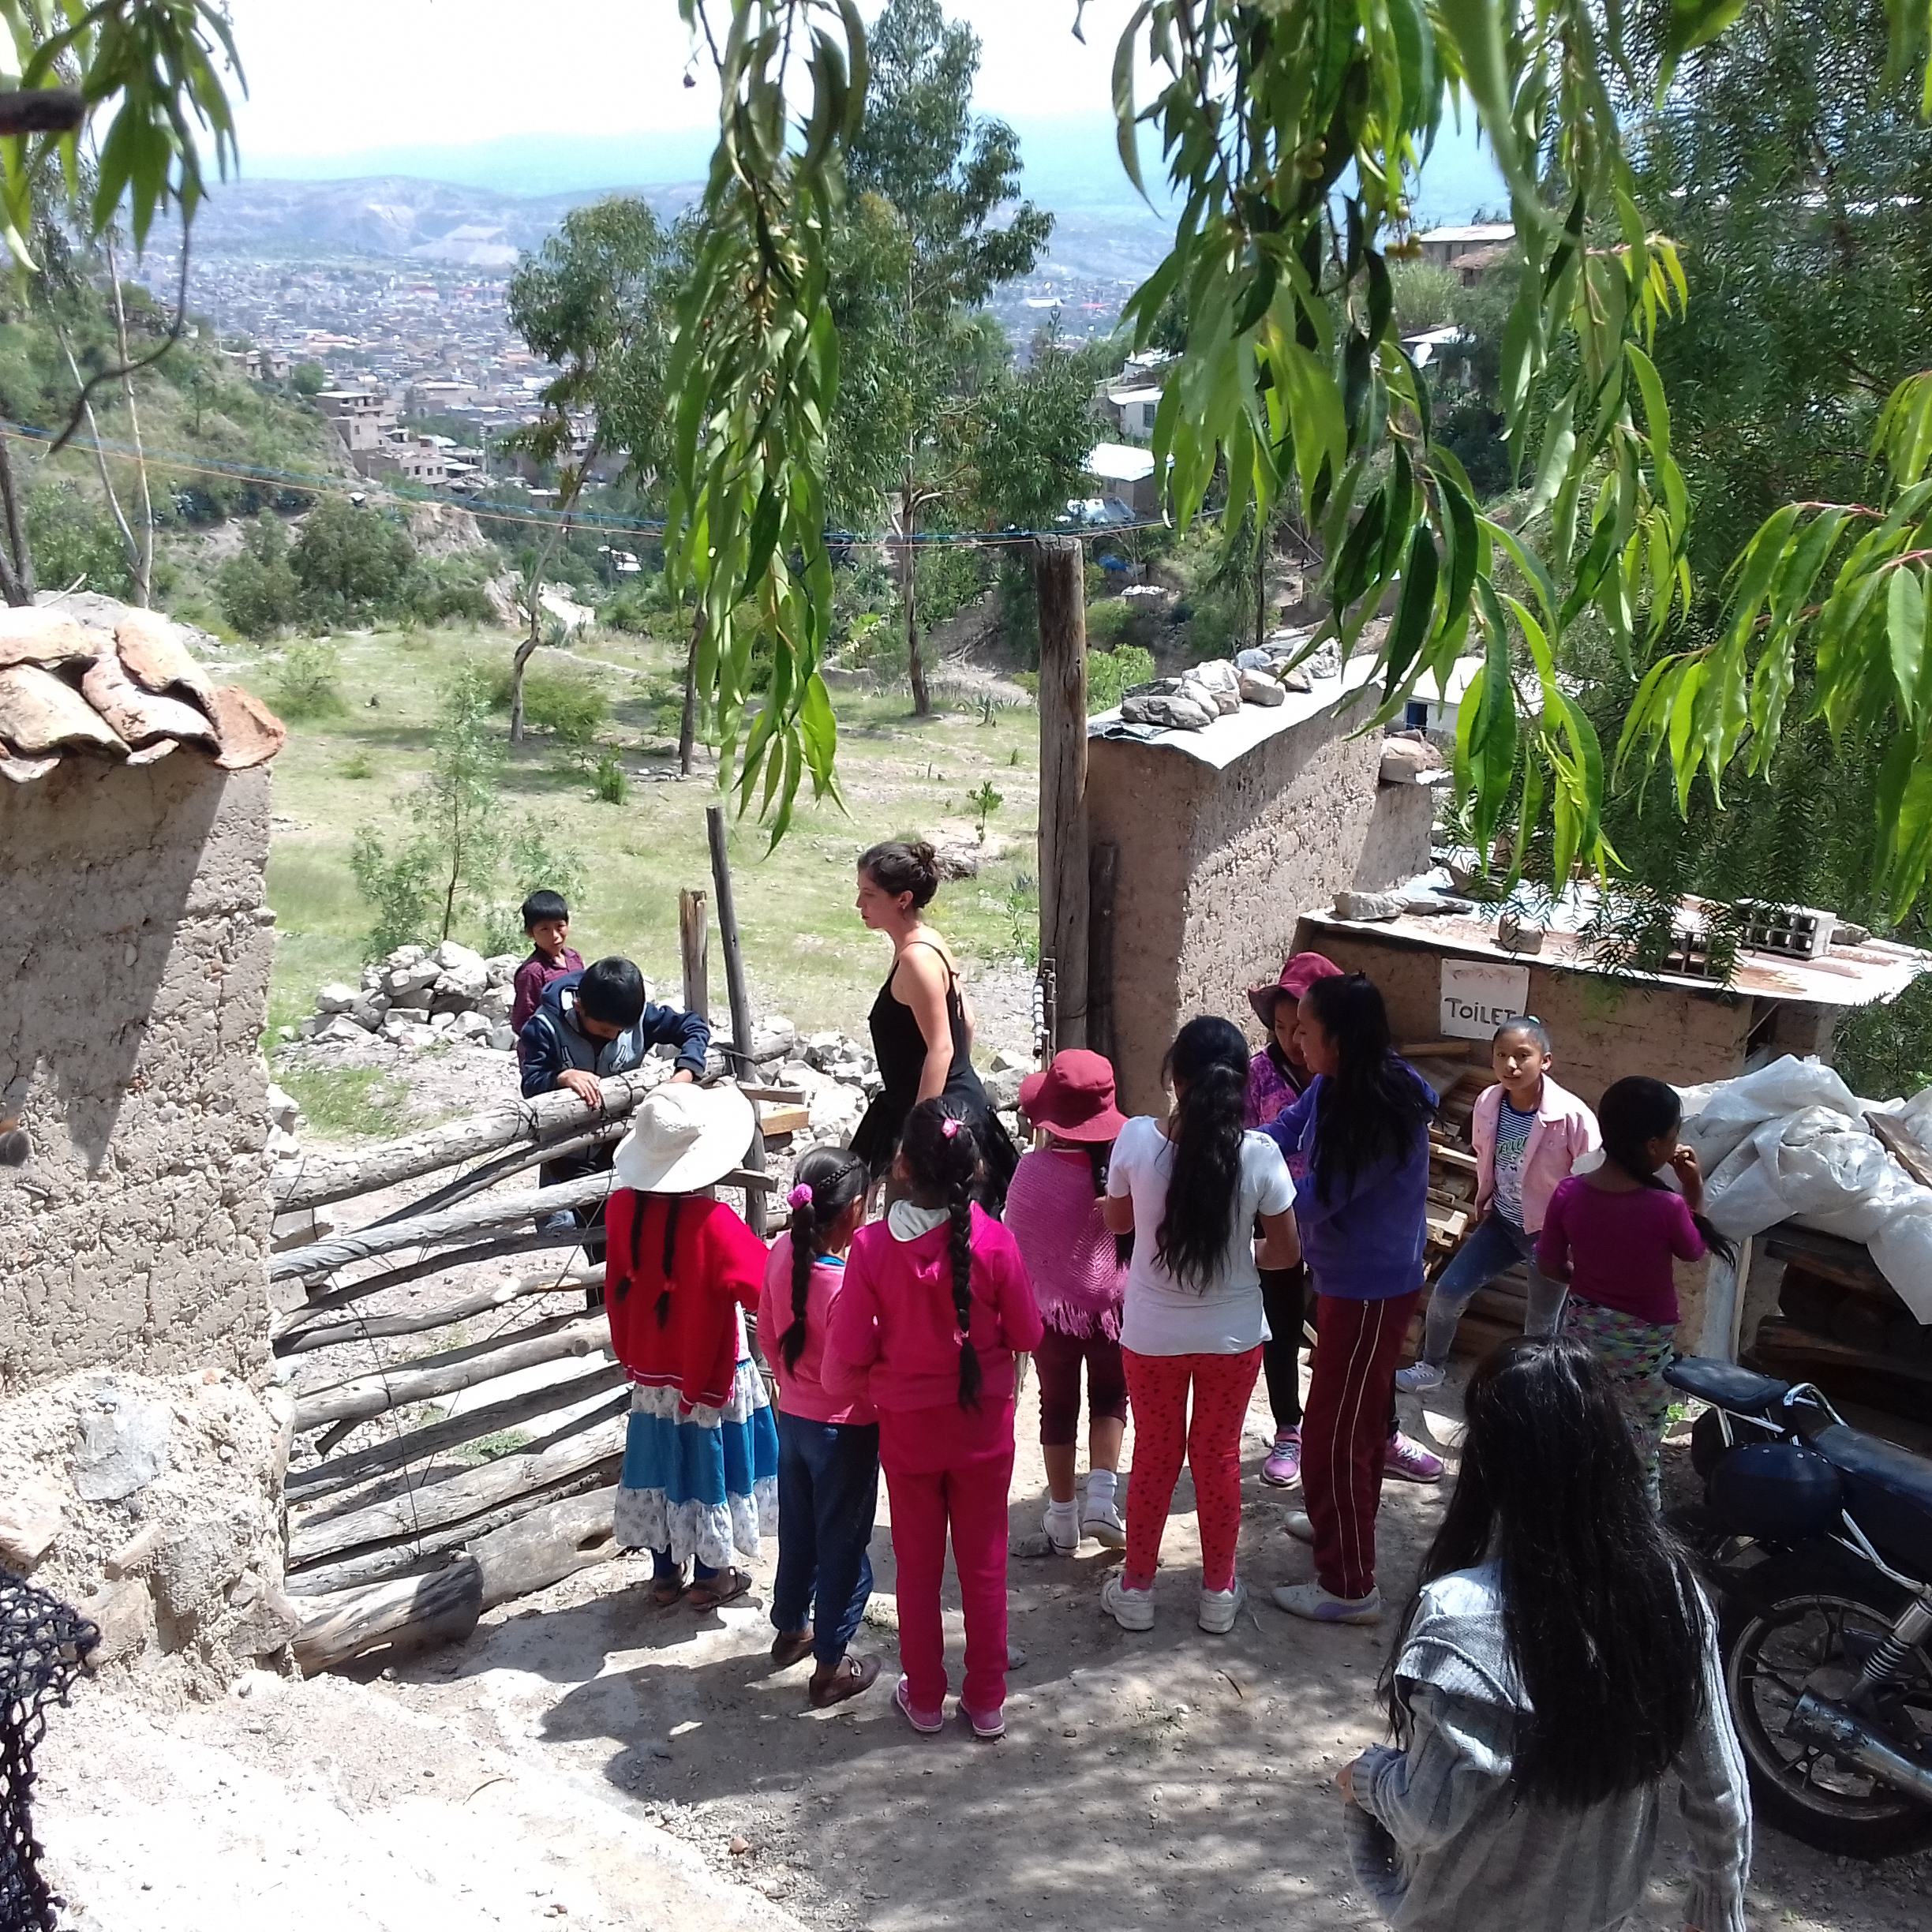 Playing Bandera with the kids attending the classes at Winay Maky in Ayacucho